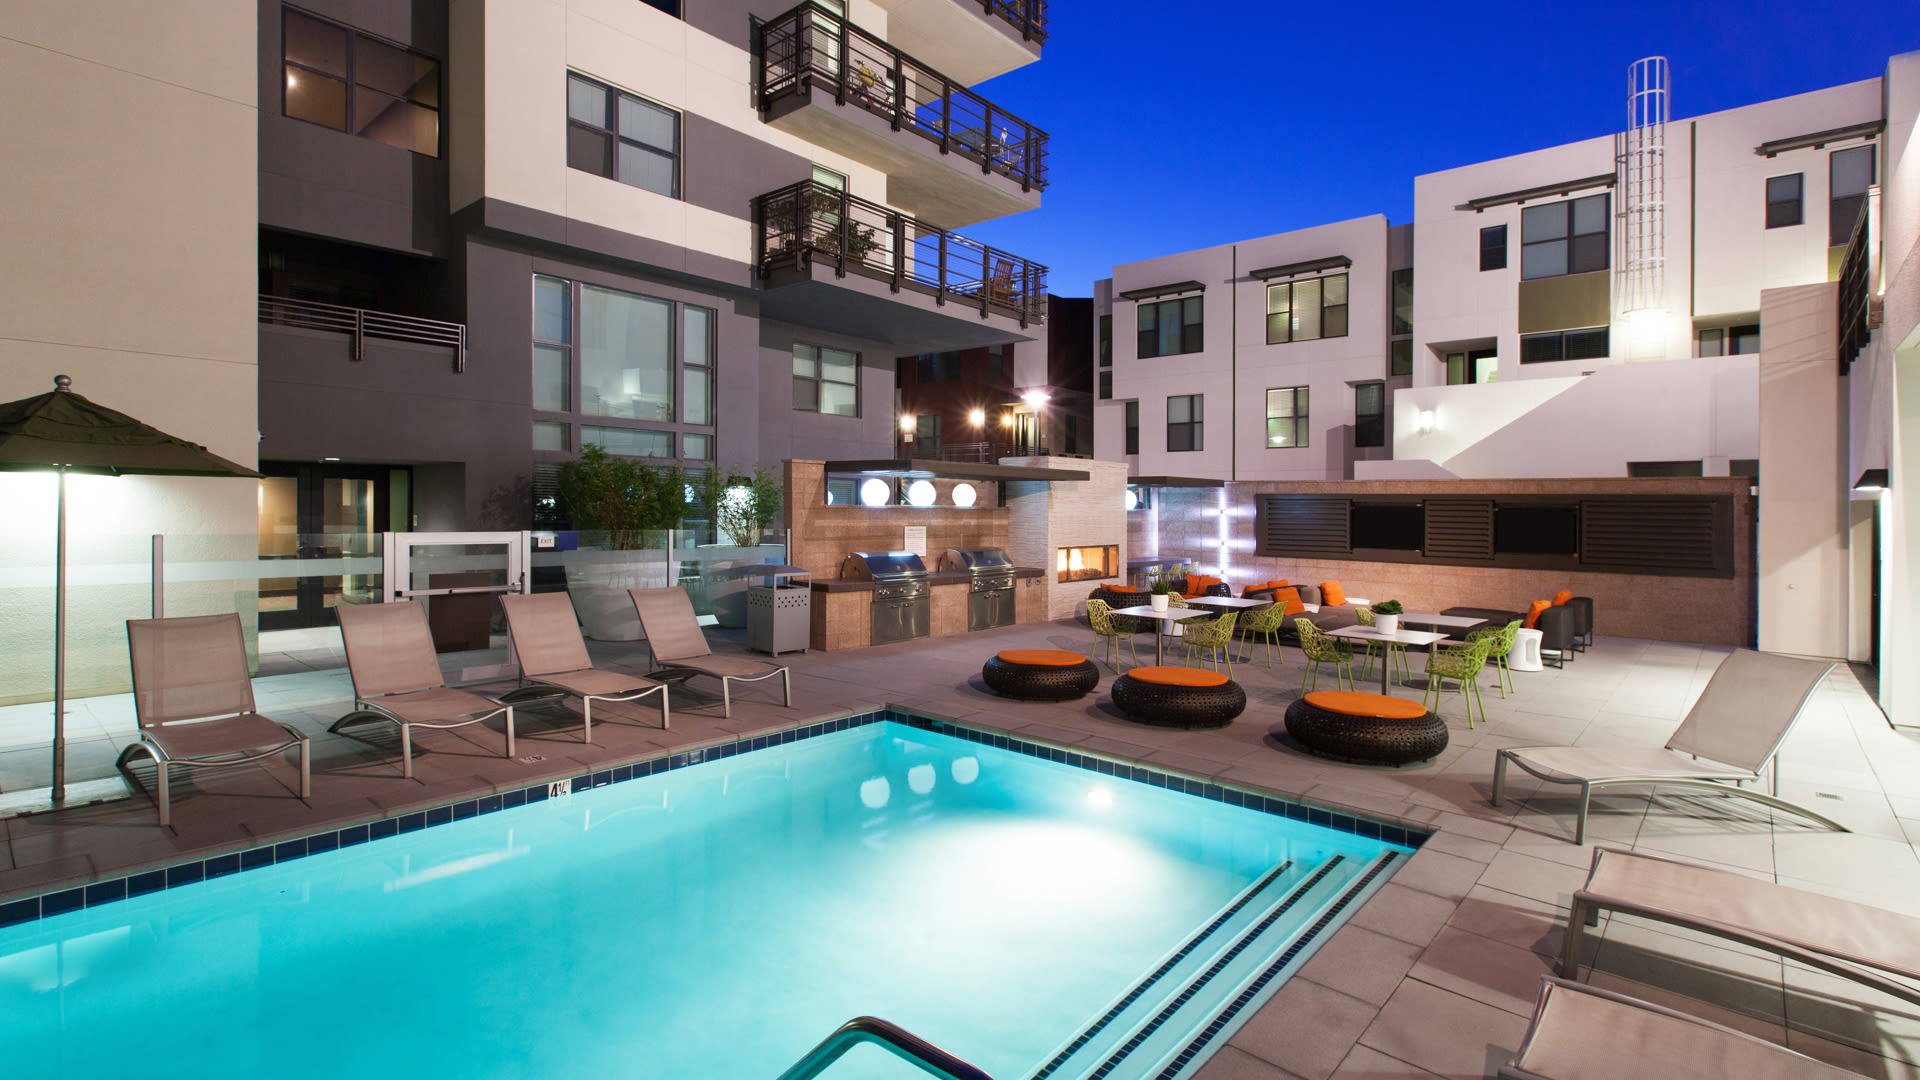 los angeles apartments over 50 apartment communities in la area residences at westgate apartments swimming pool